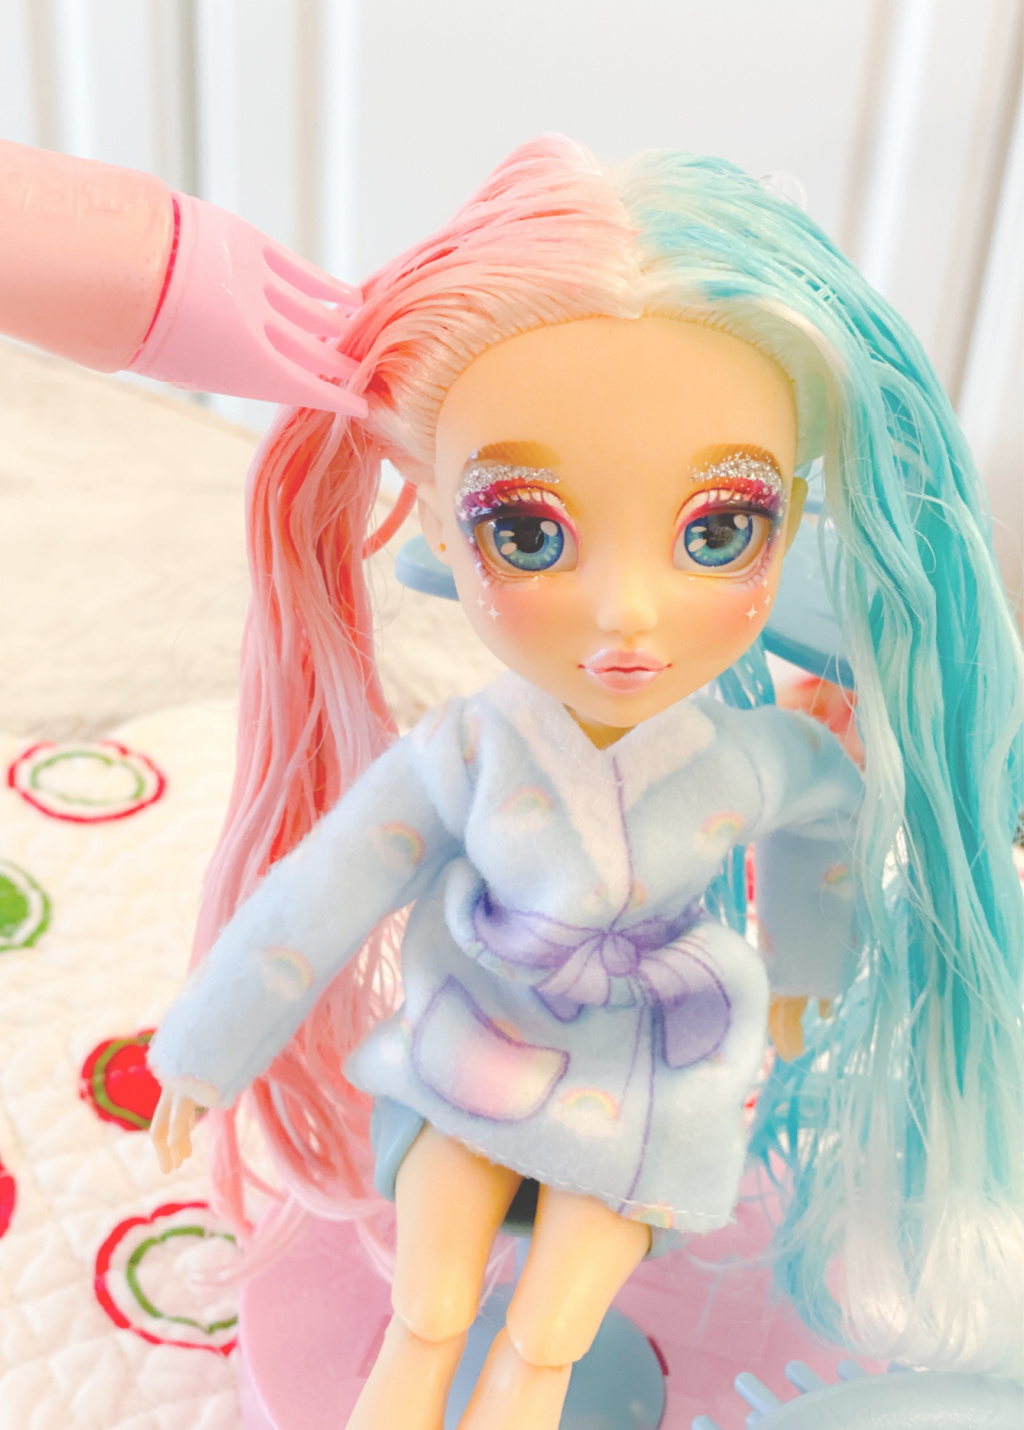 dying doll hair with pink and blue hair dye